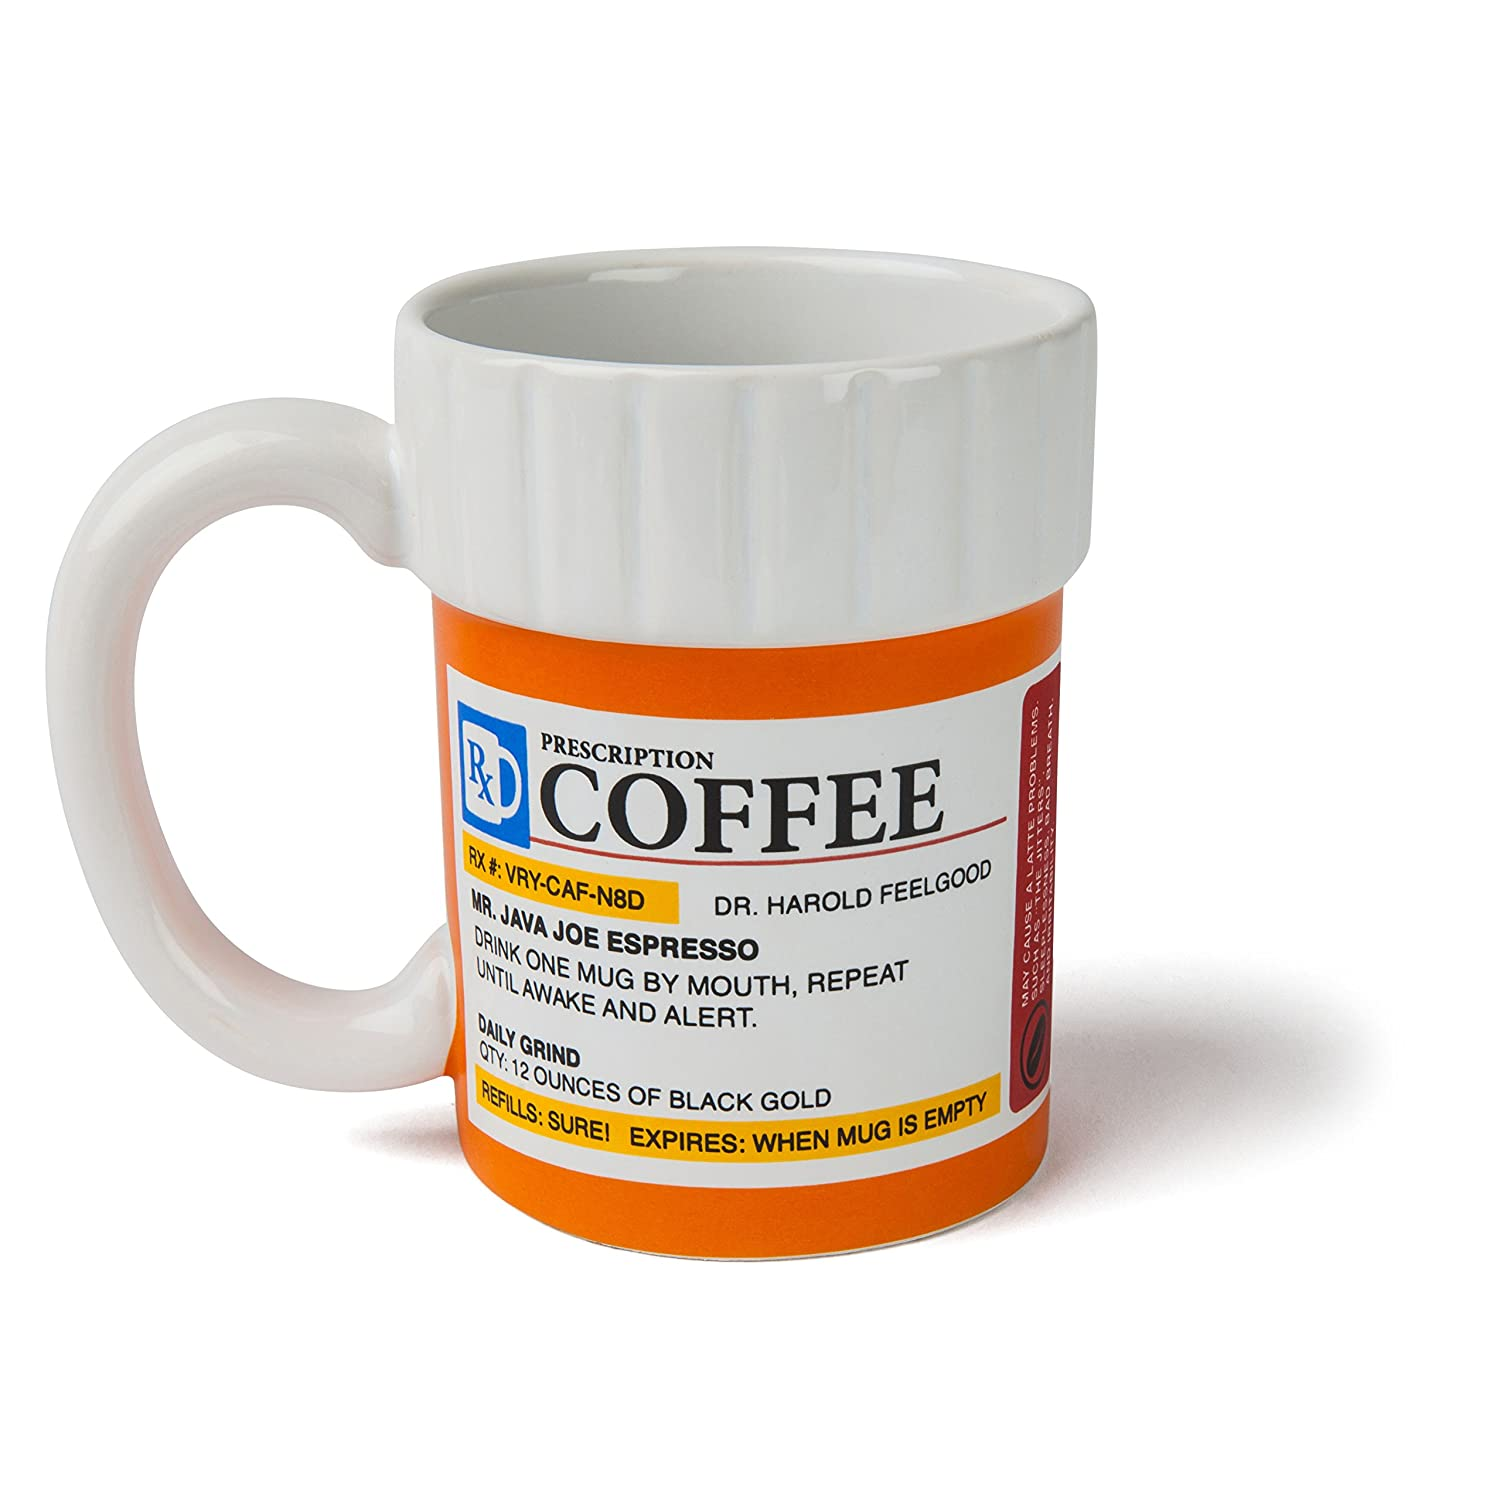 BigMouth Inc: The Prescription Coffee Mug